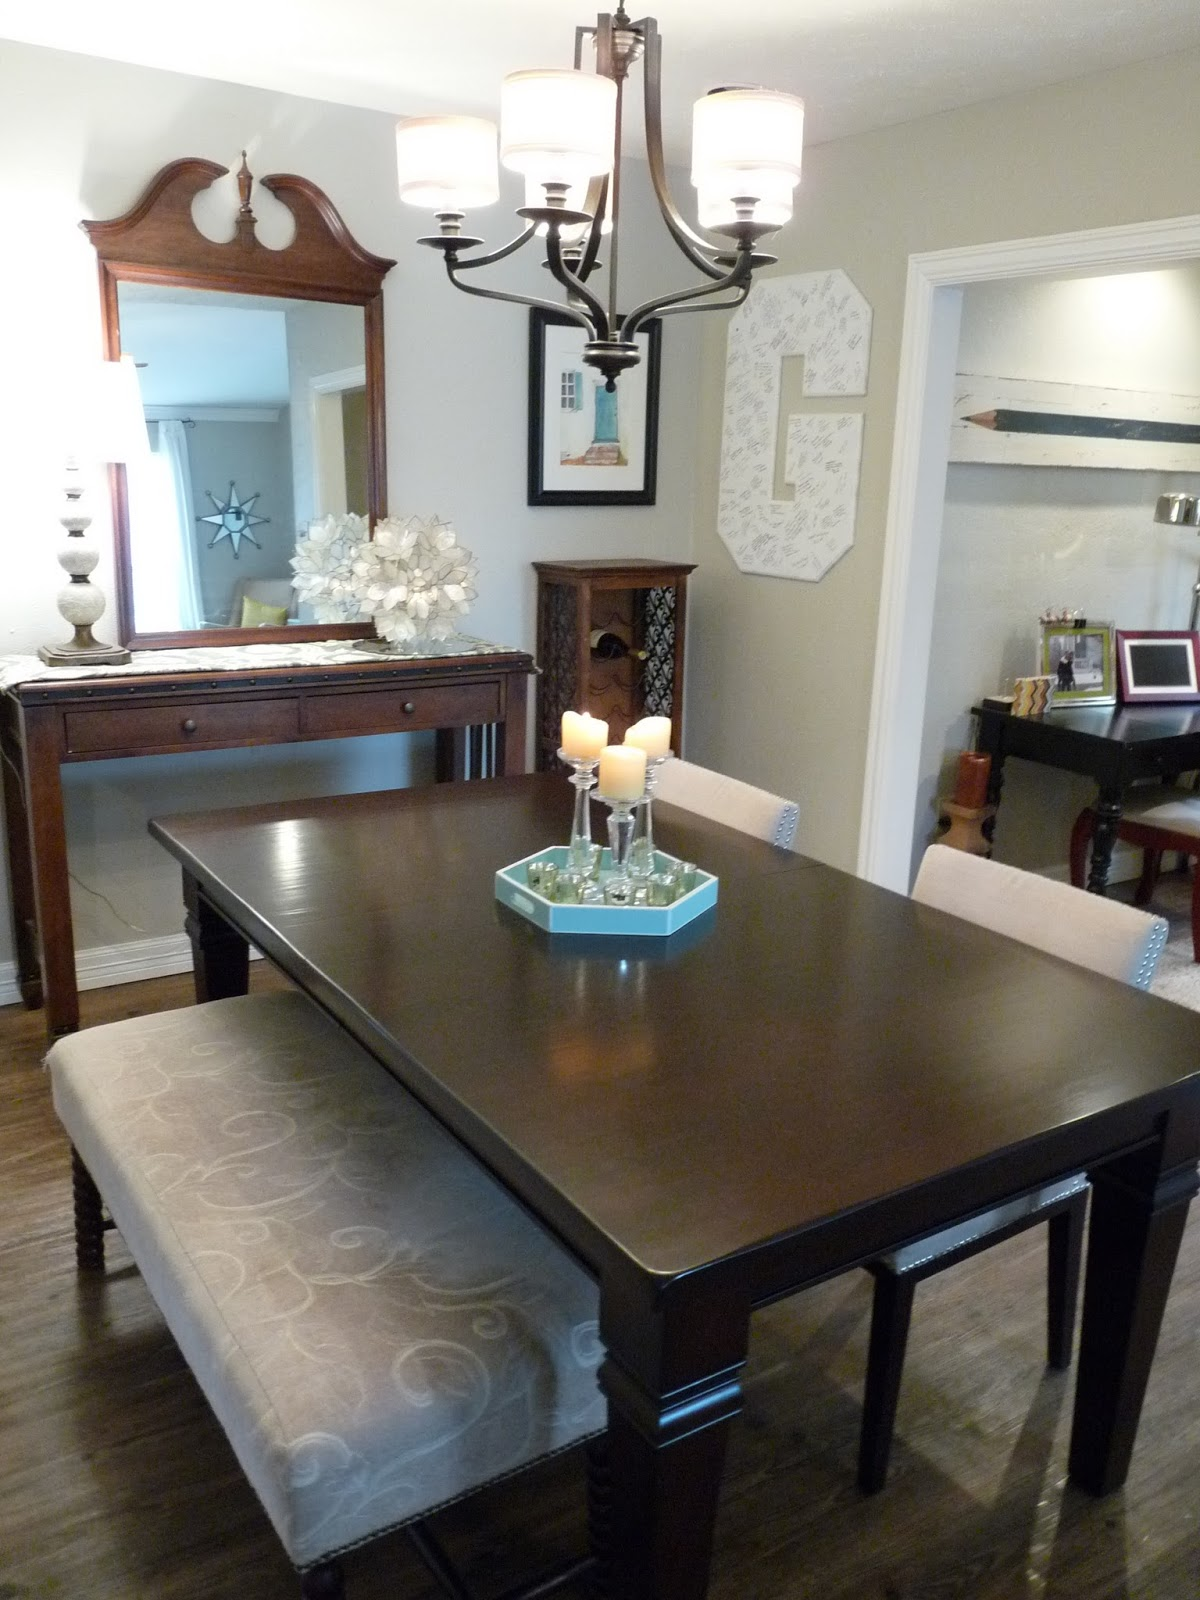 That Tray On The Table Is A Great Tiffany Blue With White Trim. What Girl  Doesnu0027t Like Tiffany Blue? I Picked It Up On Clearance At Marshalls Back In  The ...